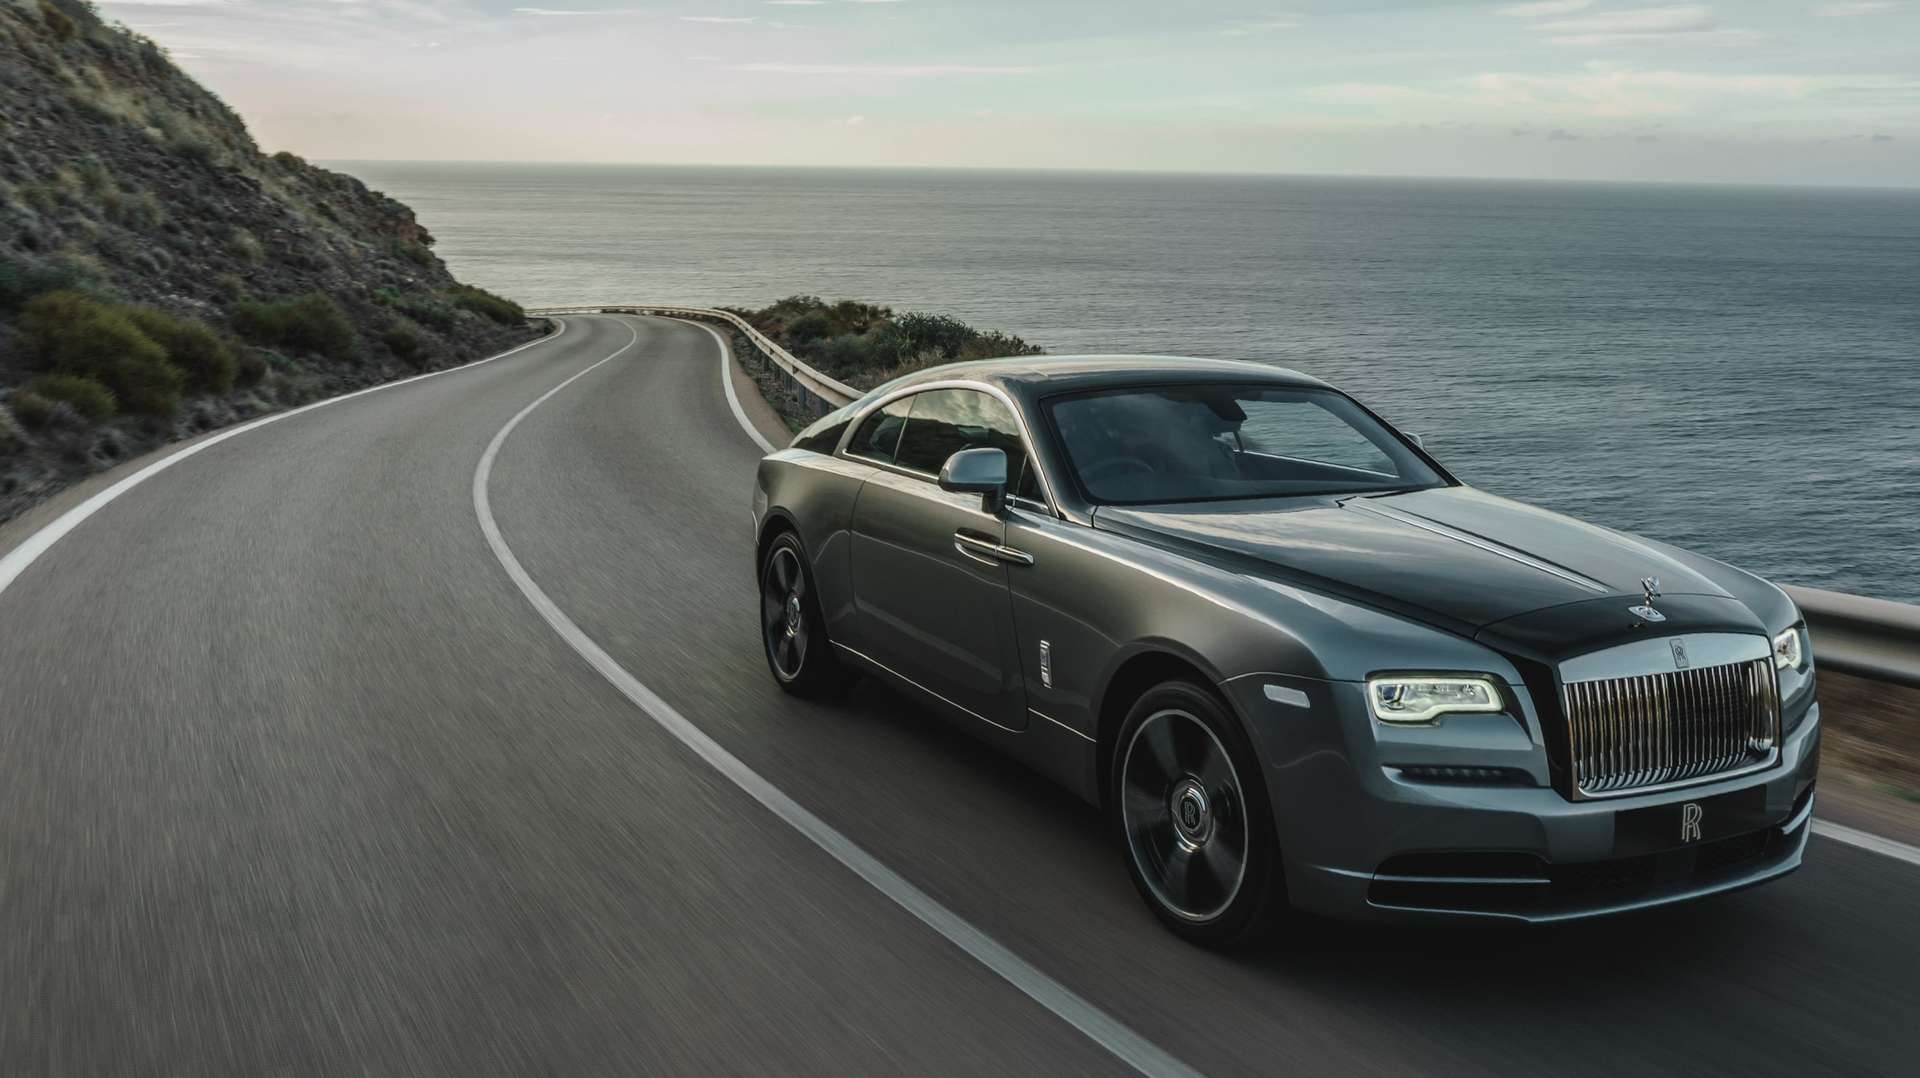 Rolls-Royce Wraith on the road, front side view, coastal path with sea view